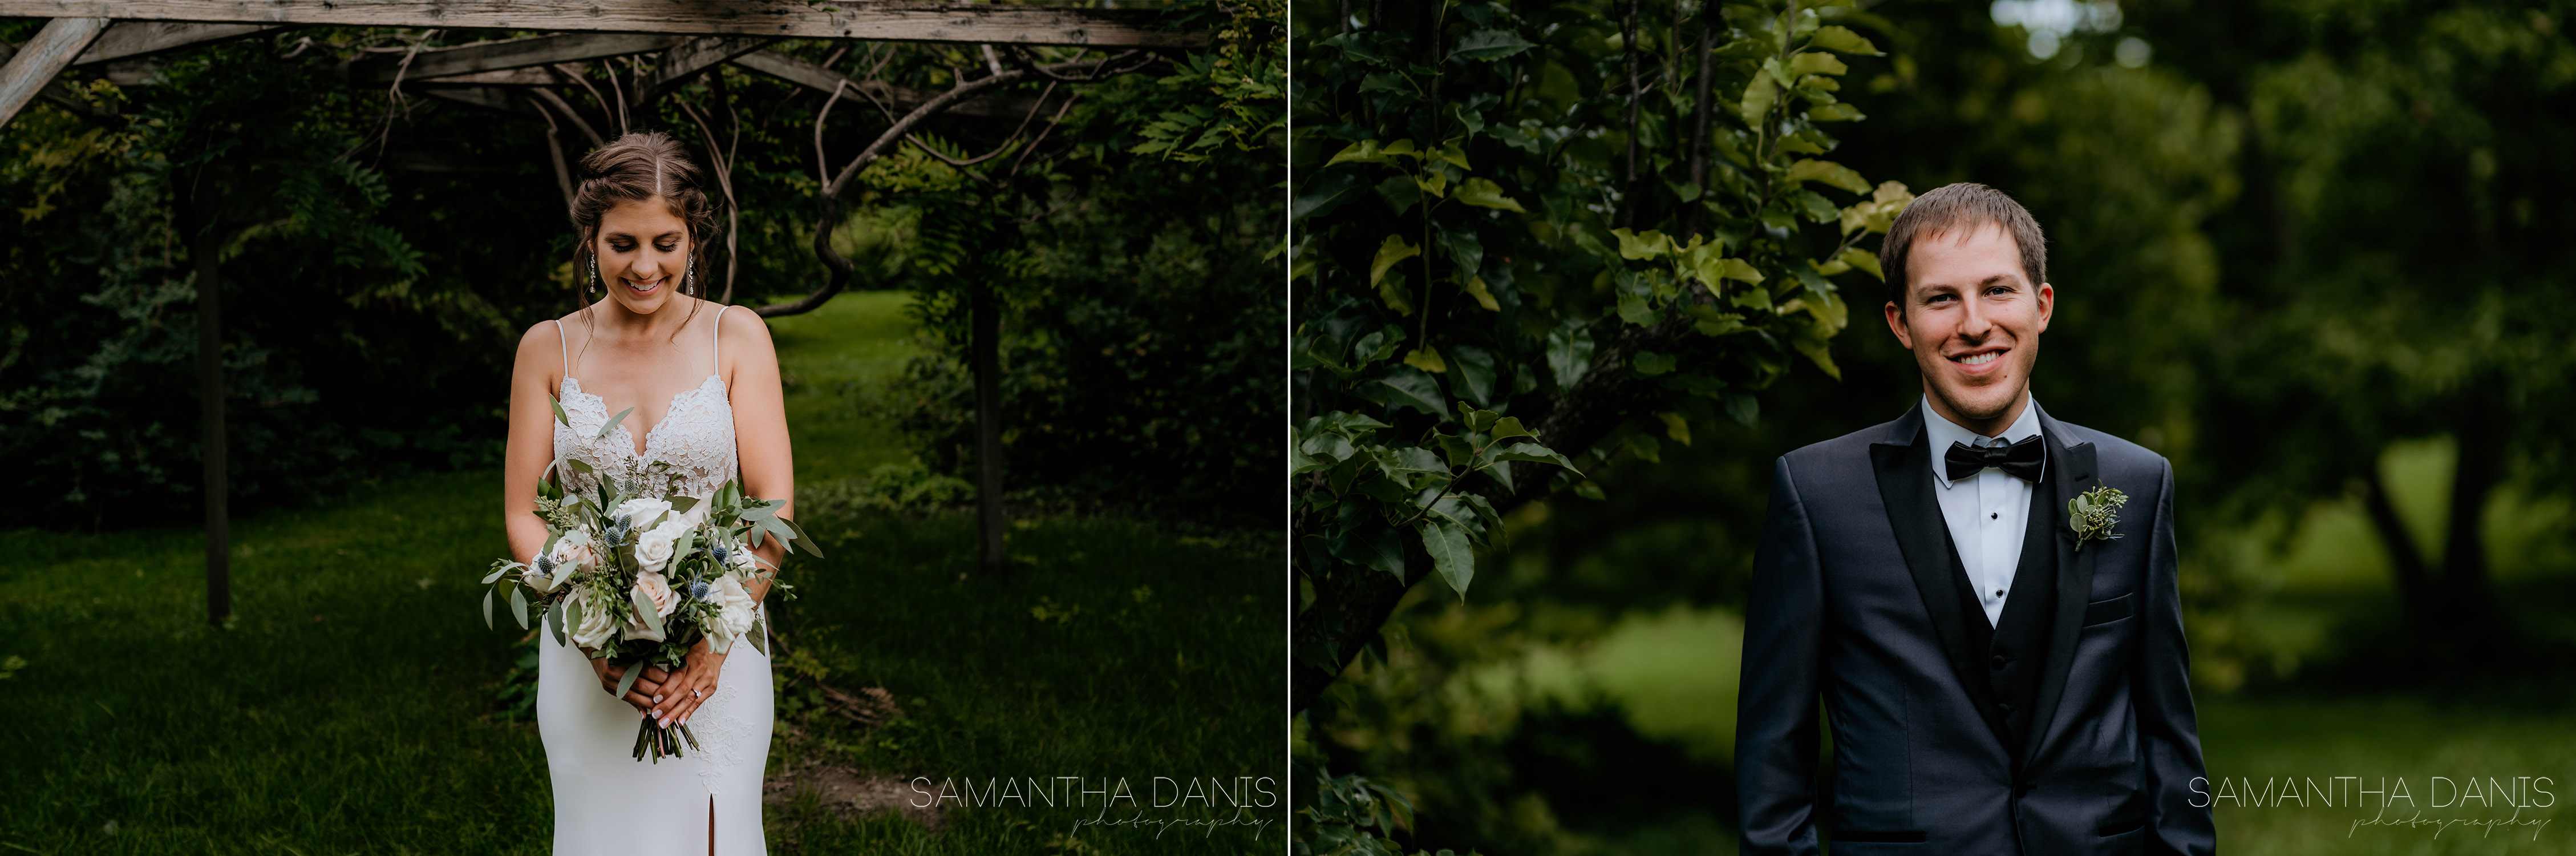 Dominion Arboretum Ottawa RedBlacks Samantha Danis Photography